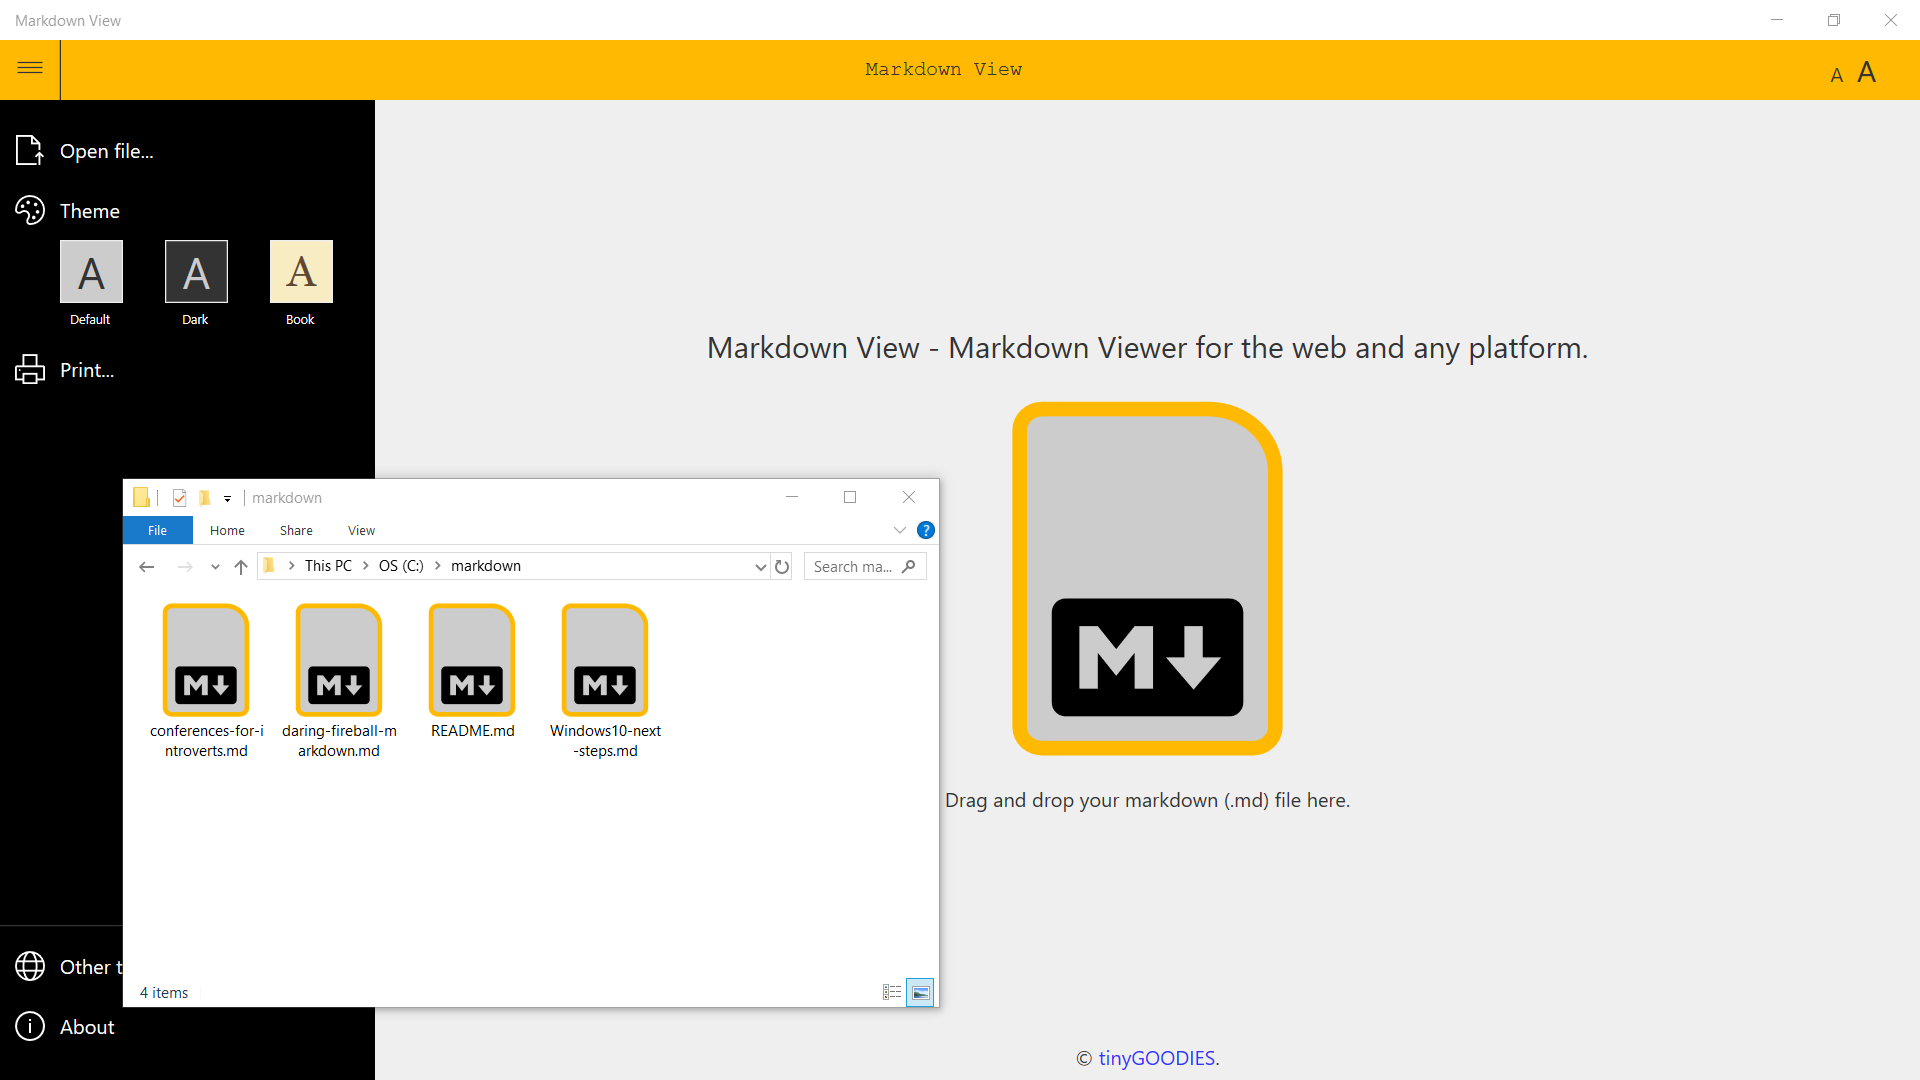 Markdown View — Markdown Viewer for the Web, Windows 10, Android and.